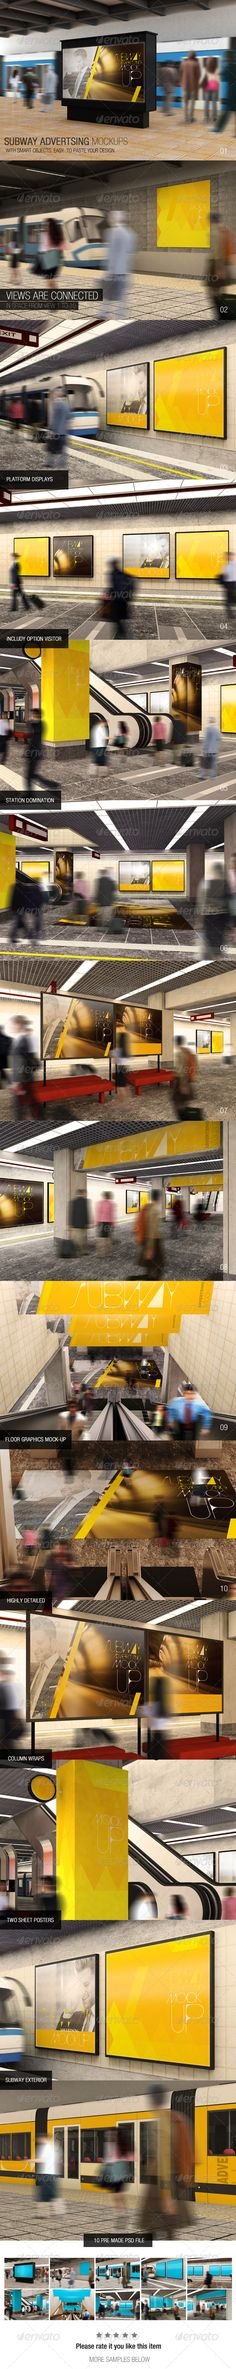 Subway Advertising Mockups 10 Pre made psd file High Resolution 3000×2000 Views are connected in space from view 1 to 10 Platform display Station domination Subway exterior Includy option visitor Included speedy motion